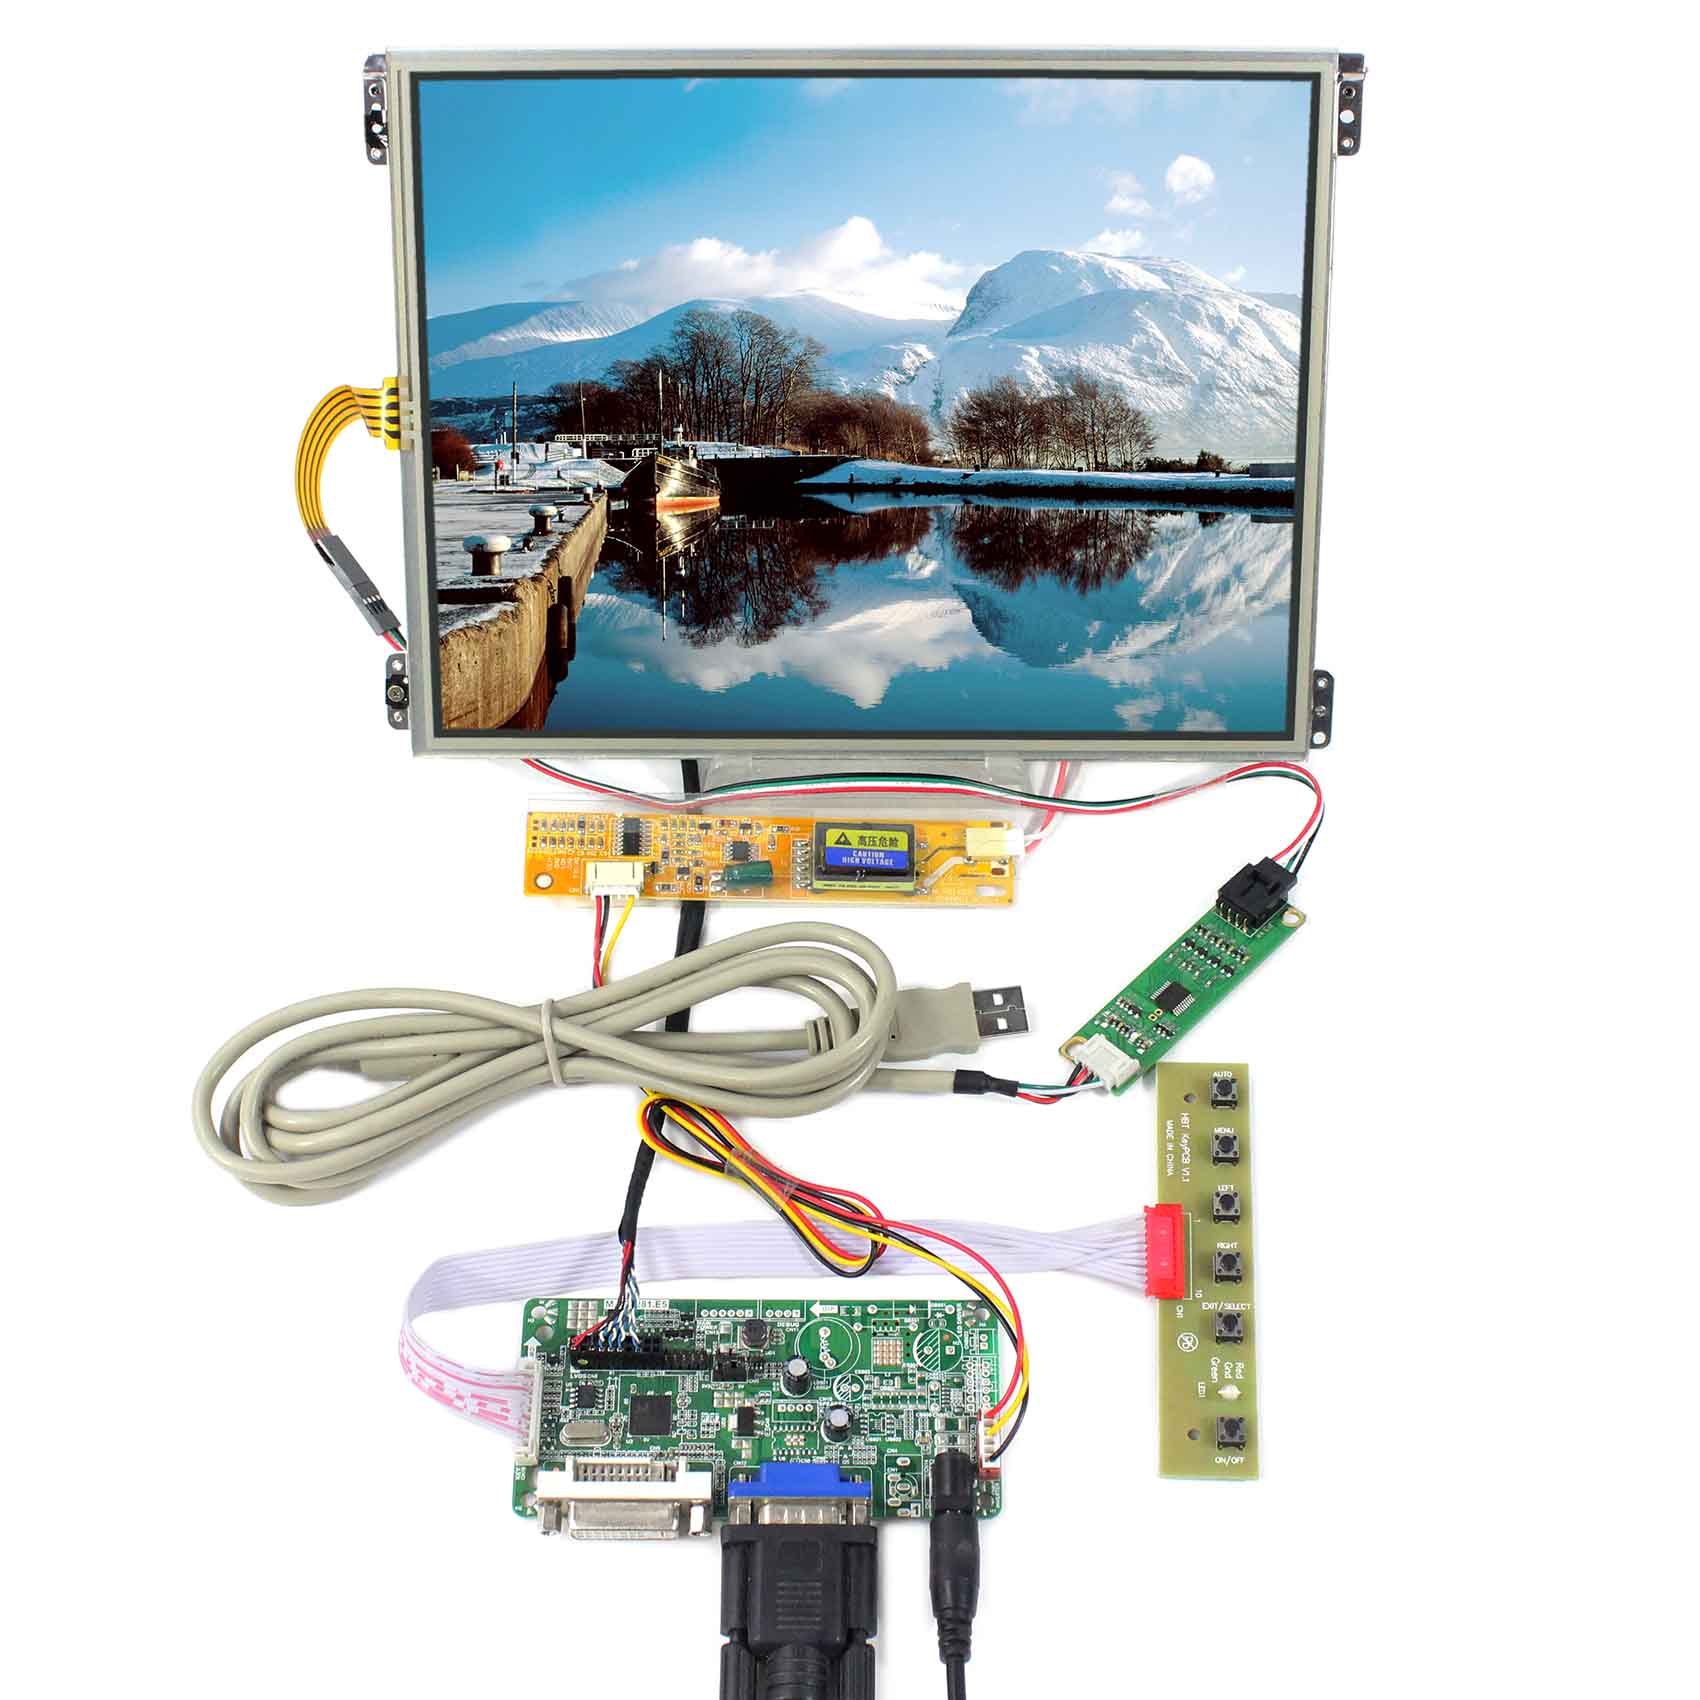 10.4inch HT10X21-311 1024X768 IPS LCD Screen With Touch Panel VS104TP-A1 with VGA+DVI LCD Controller Board RT228110.4inch HT10X21-311 1024X768 IPS LCD Screen With Touch Panel VS104TP-A1 with VGA+DVI LCD Controller Board RT2281